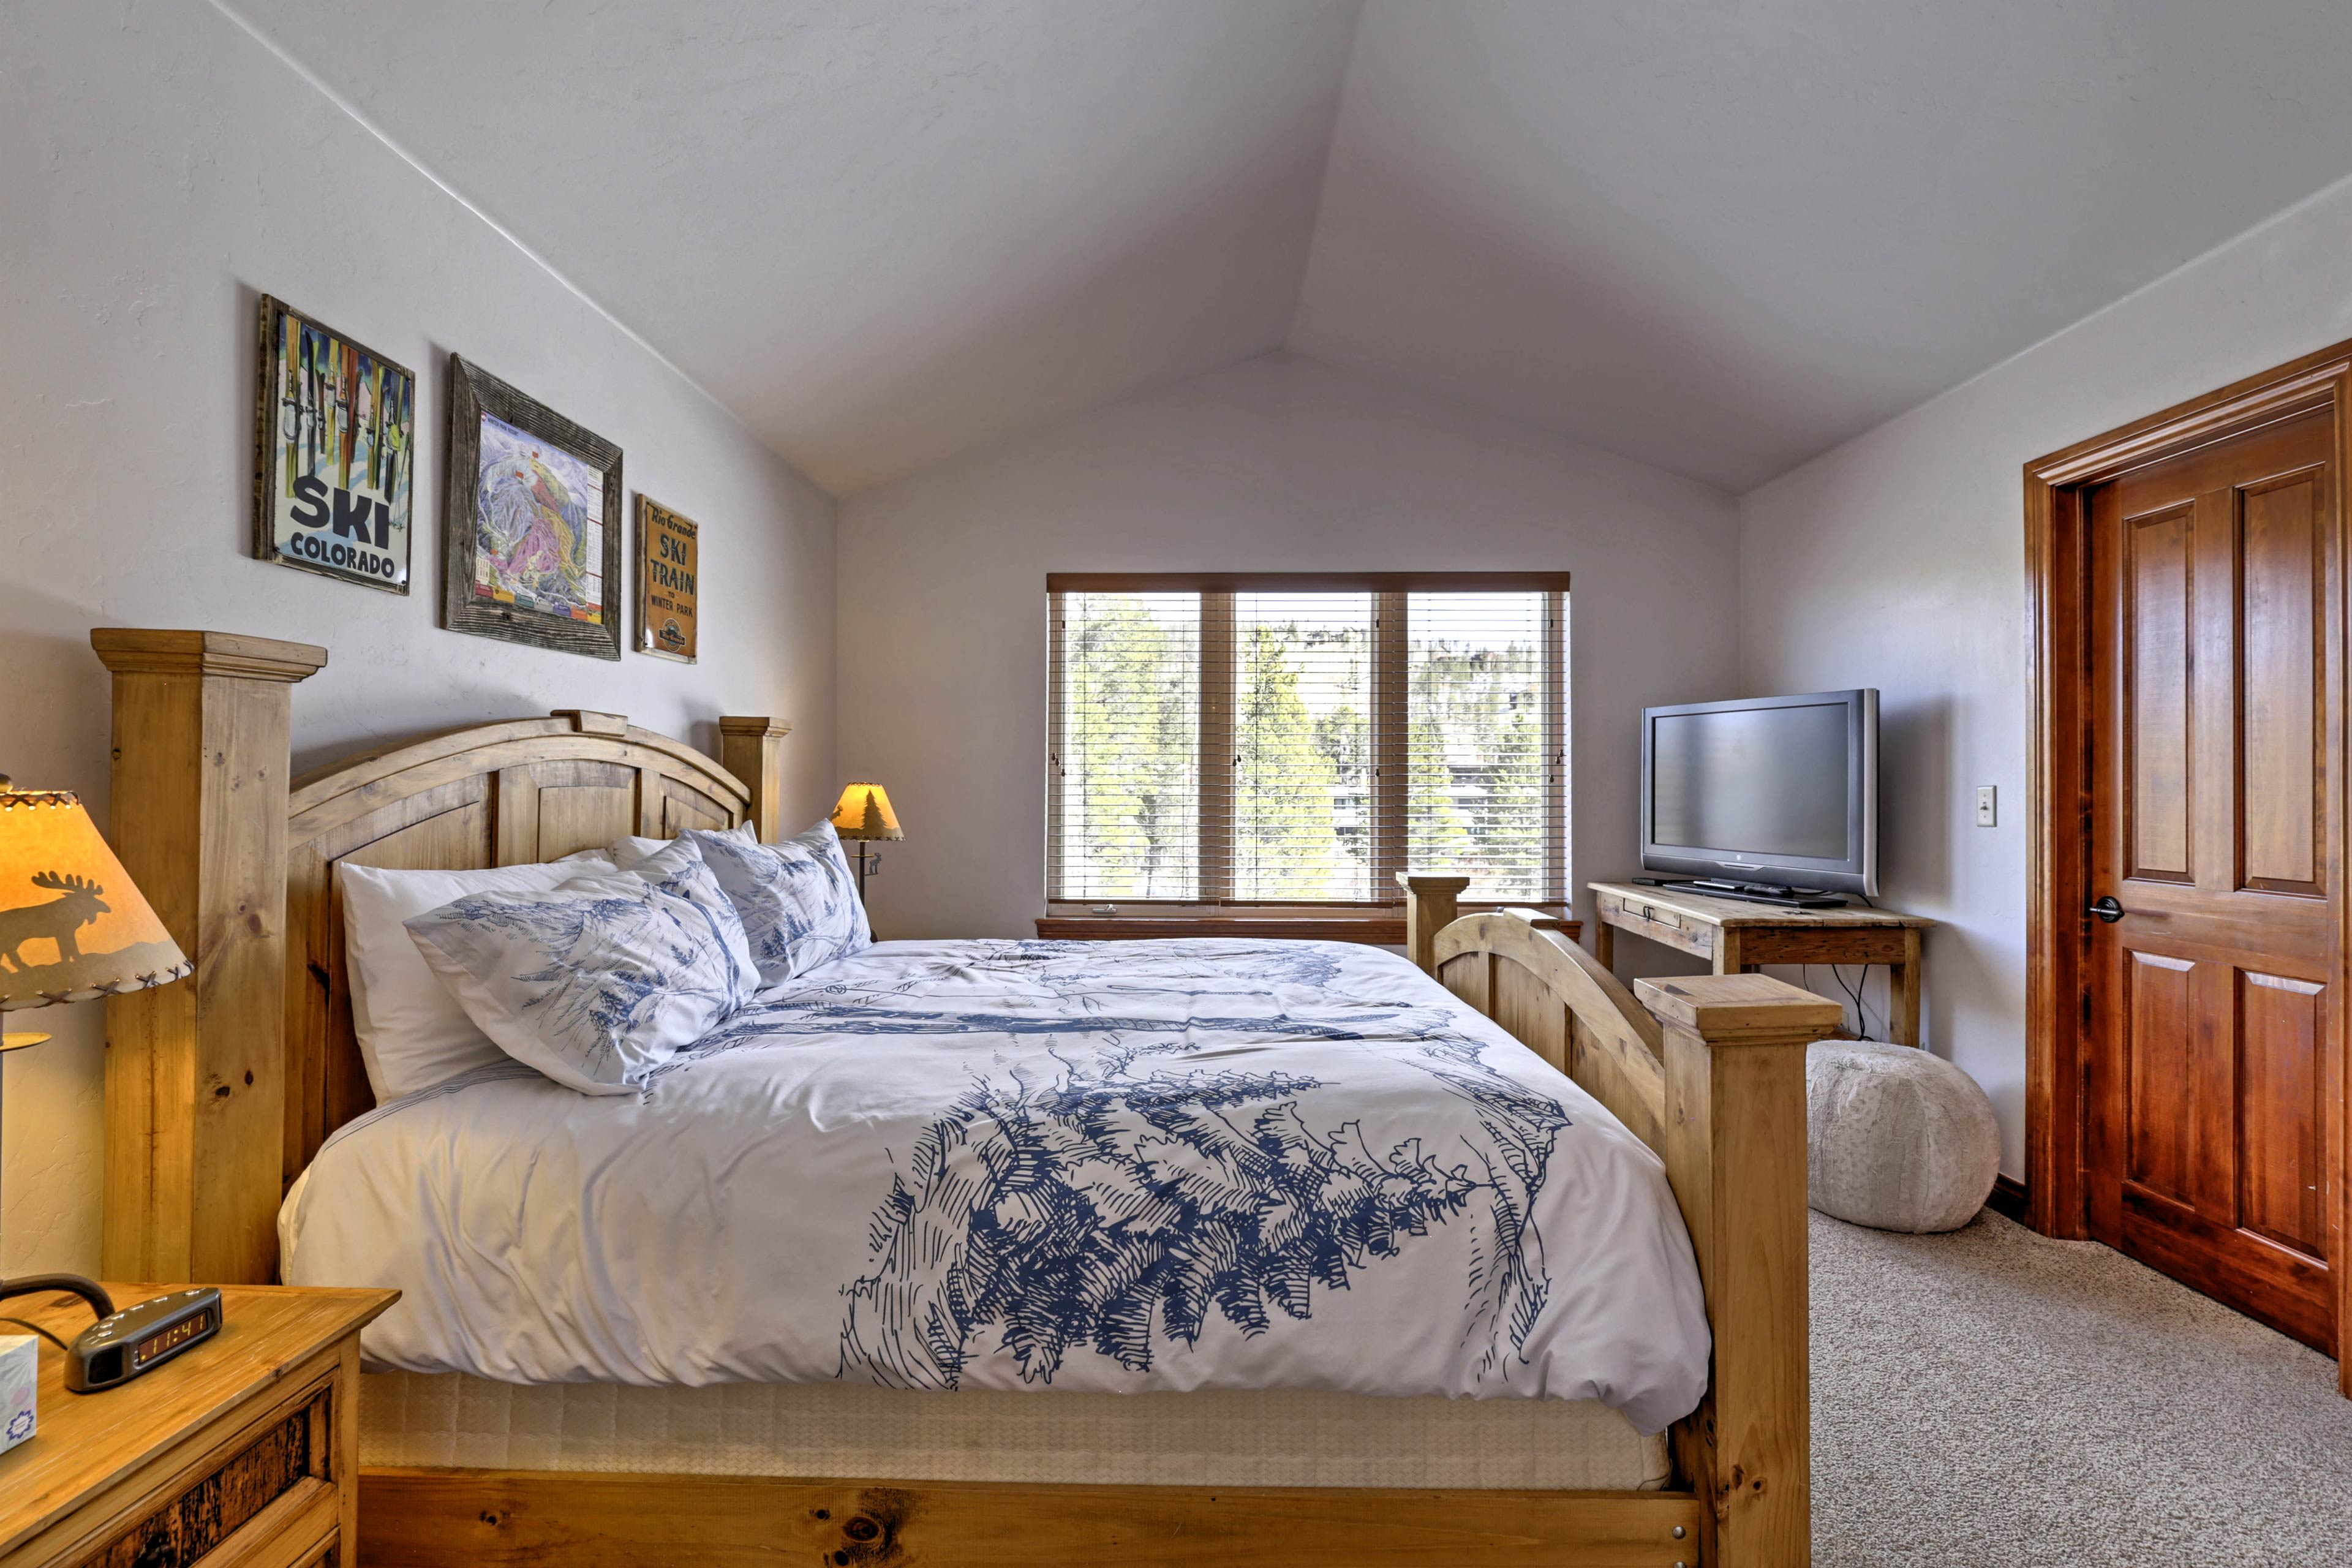 The master bedroom features a king bed, flat-screen TV and en-suite bathroom.